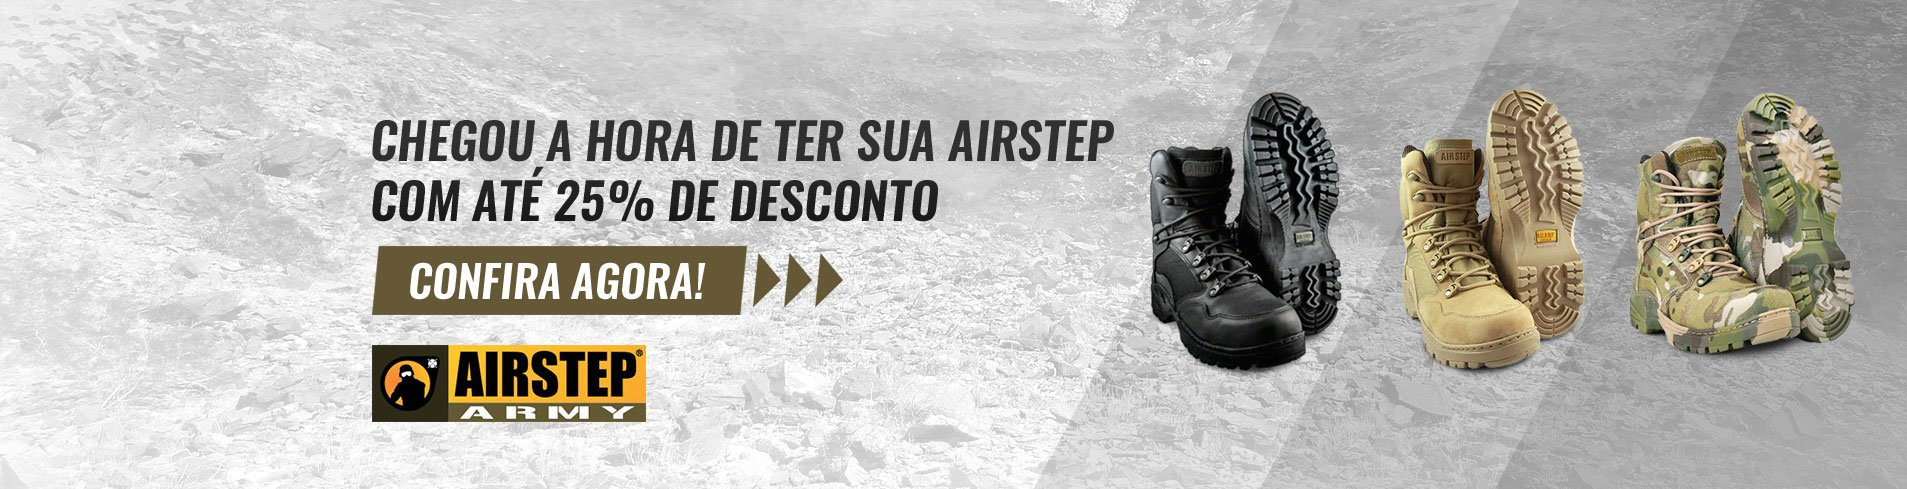 Promocao Airstep